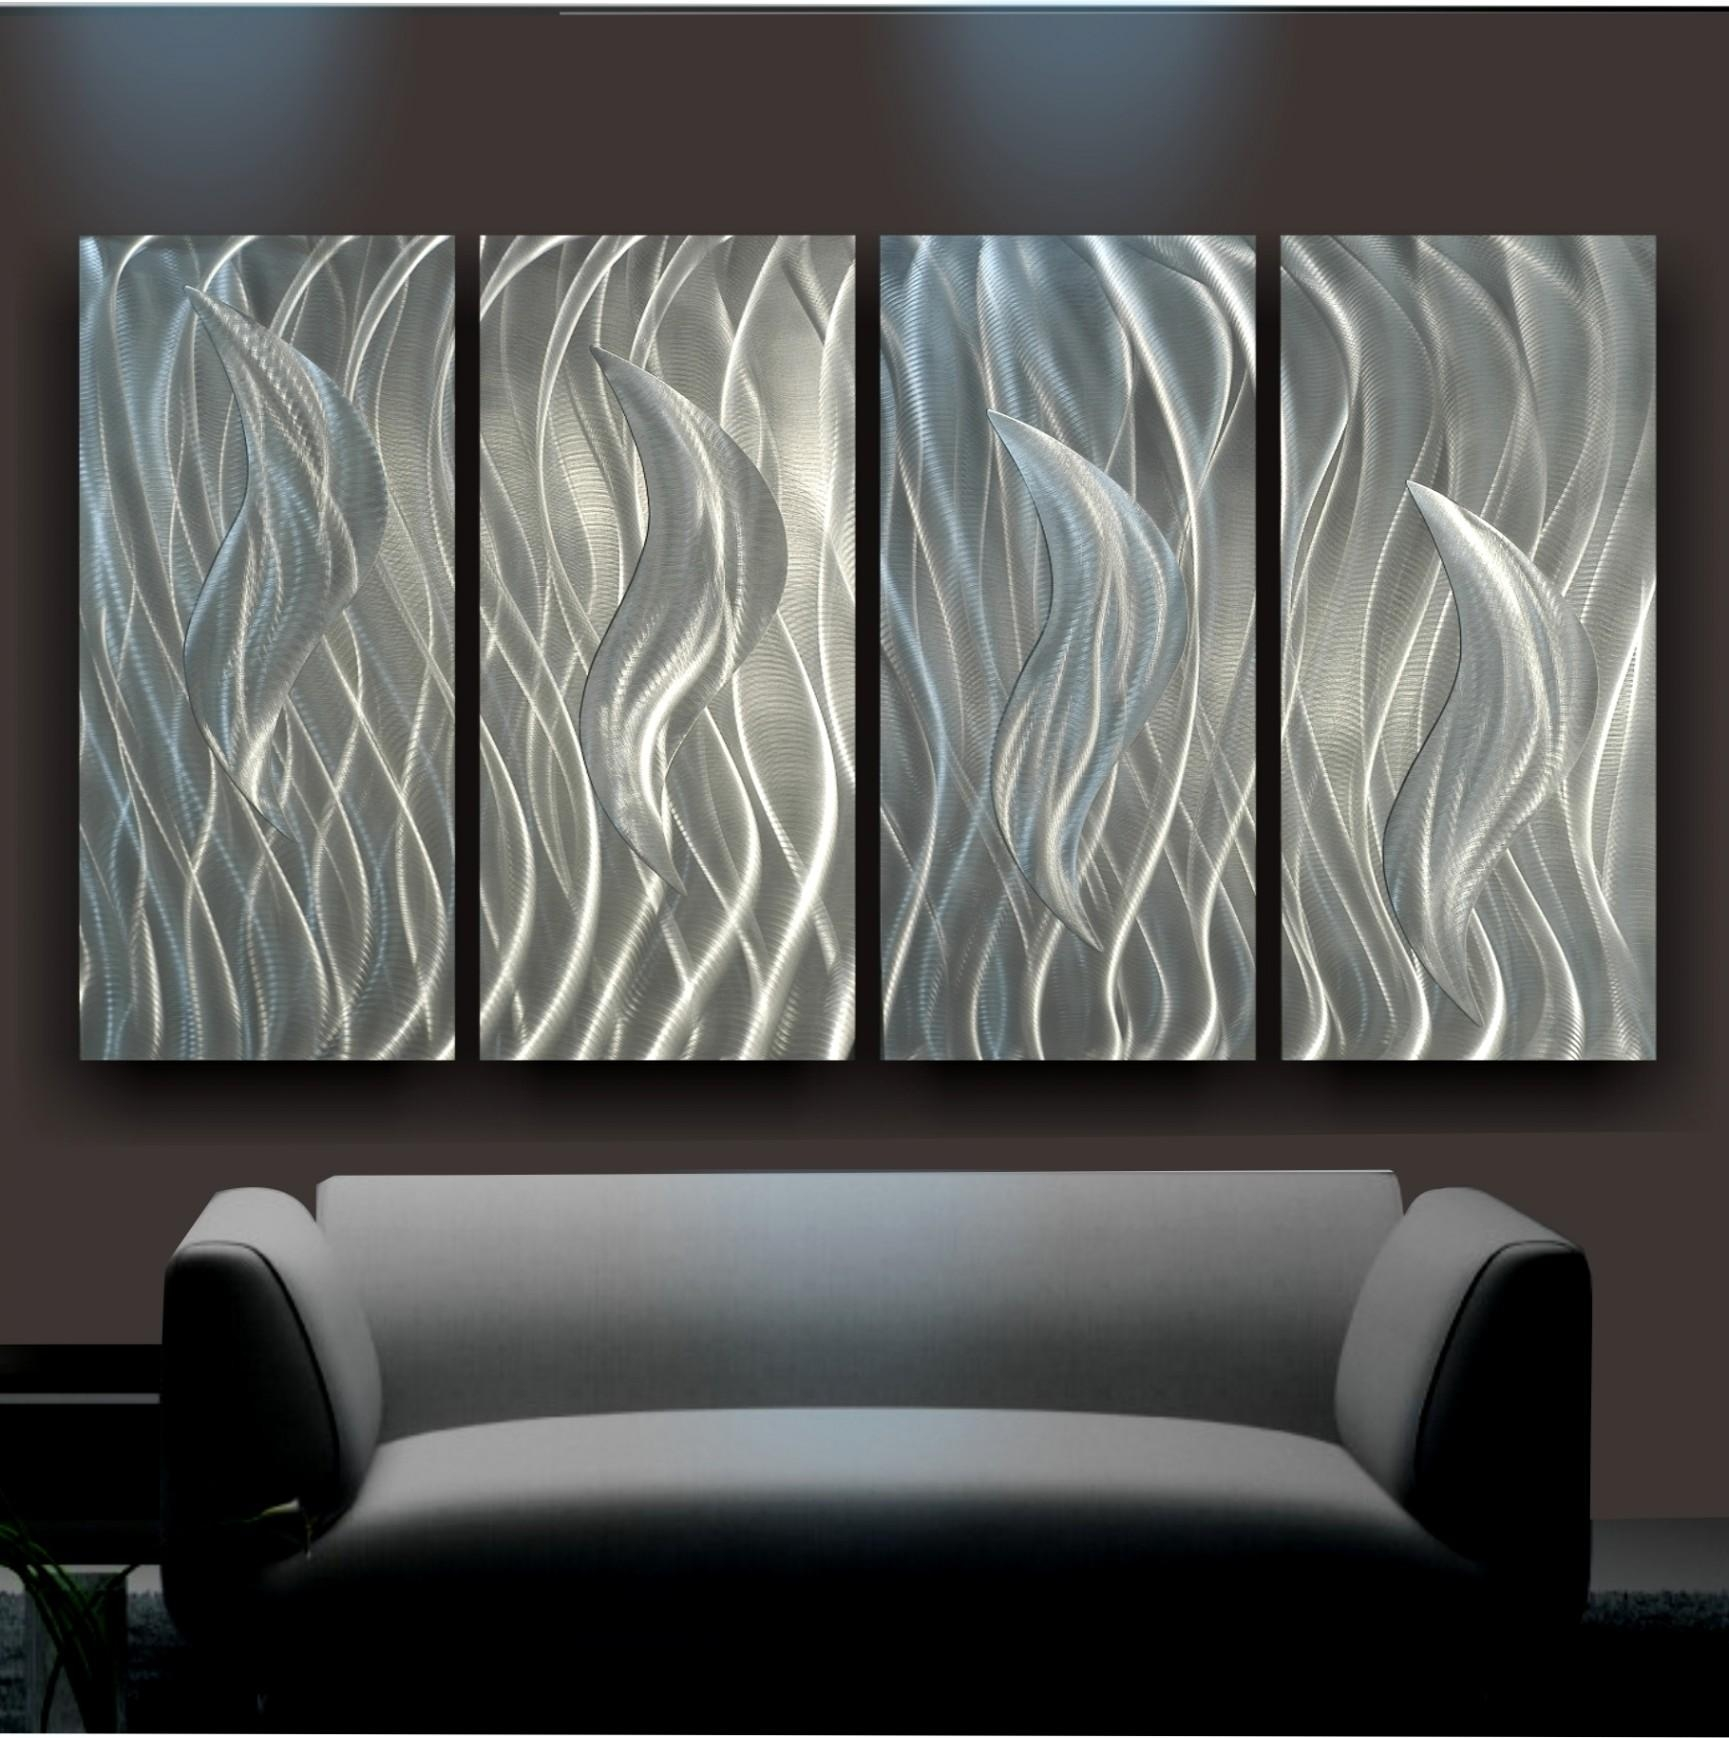 Best Of Unique Modern Wall Art And Decor Regarding Unique Modern Wall Art And Decor (View 12 of 20)